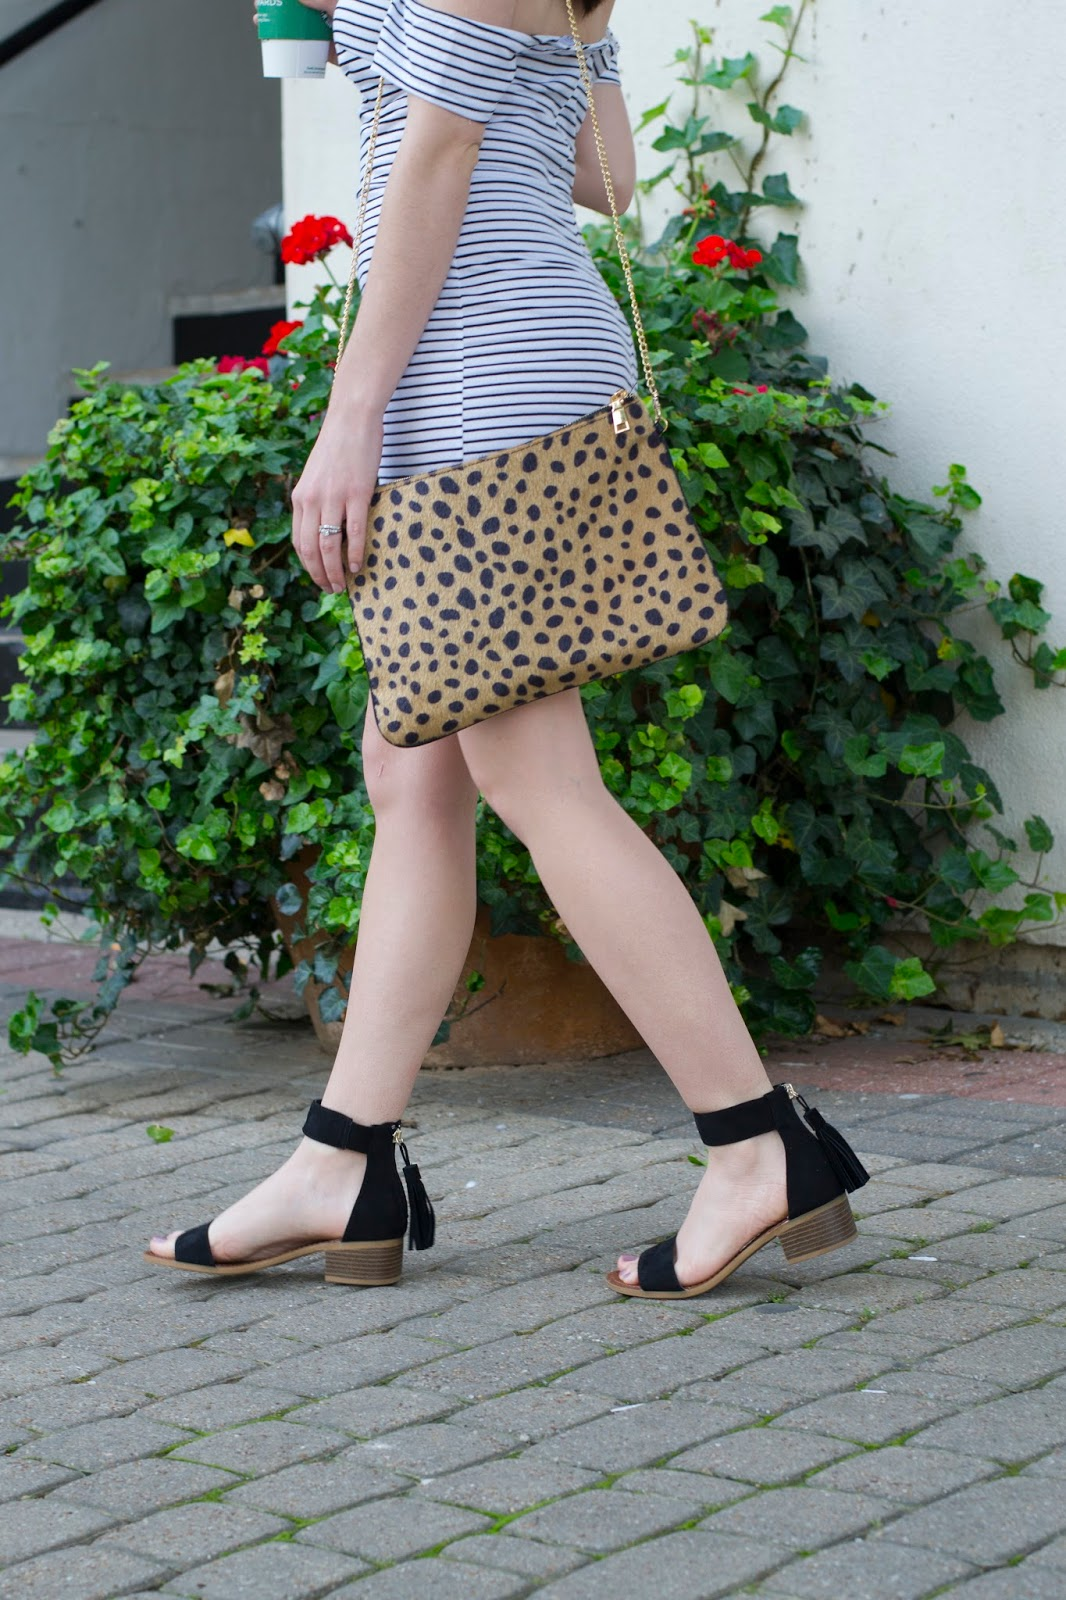 Mixing patterns with a striped dress and leopard bag